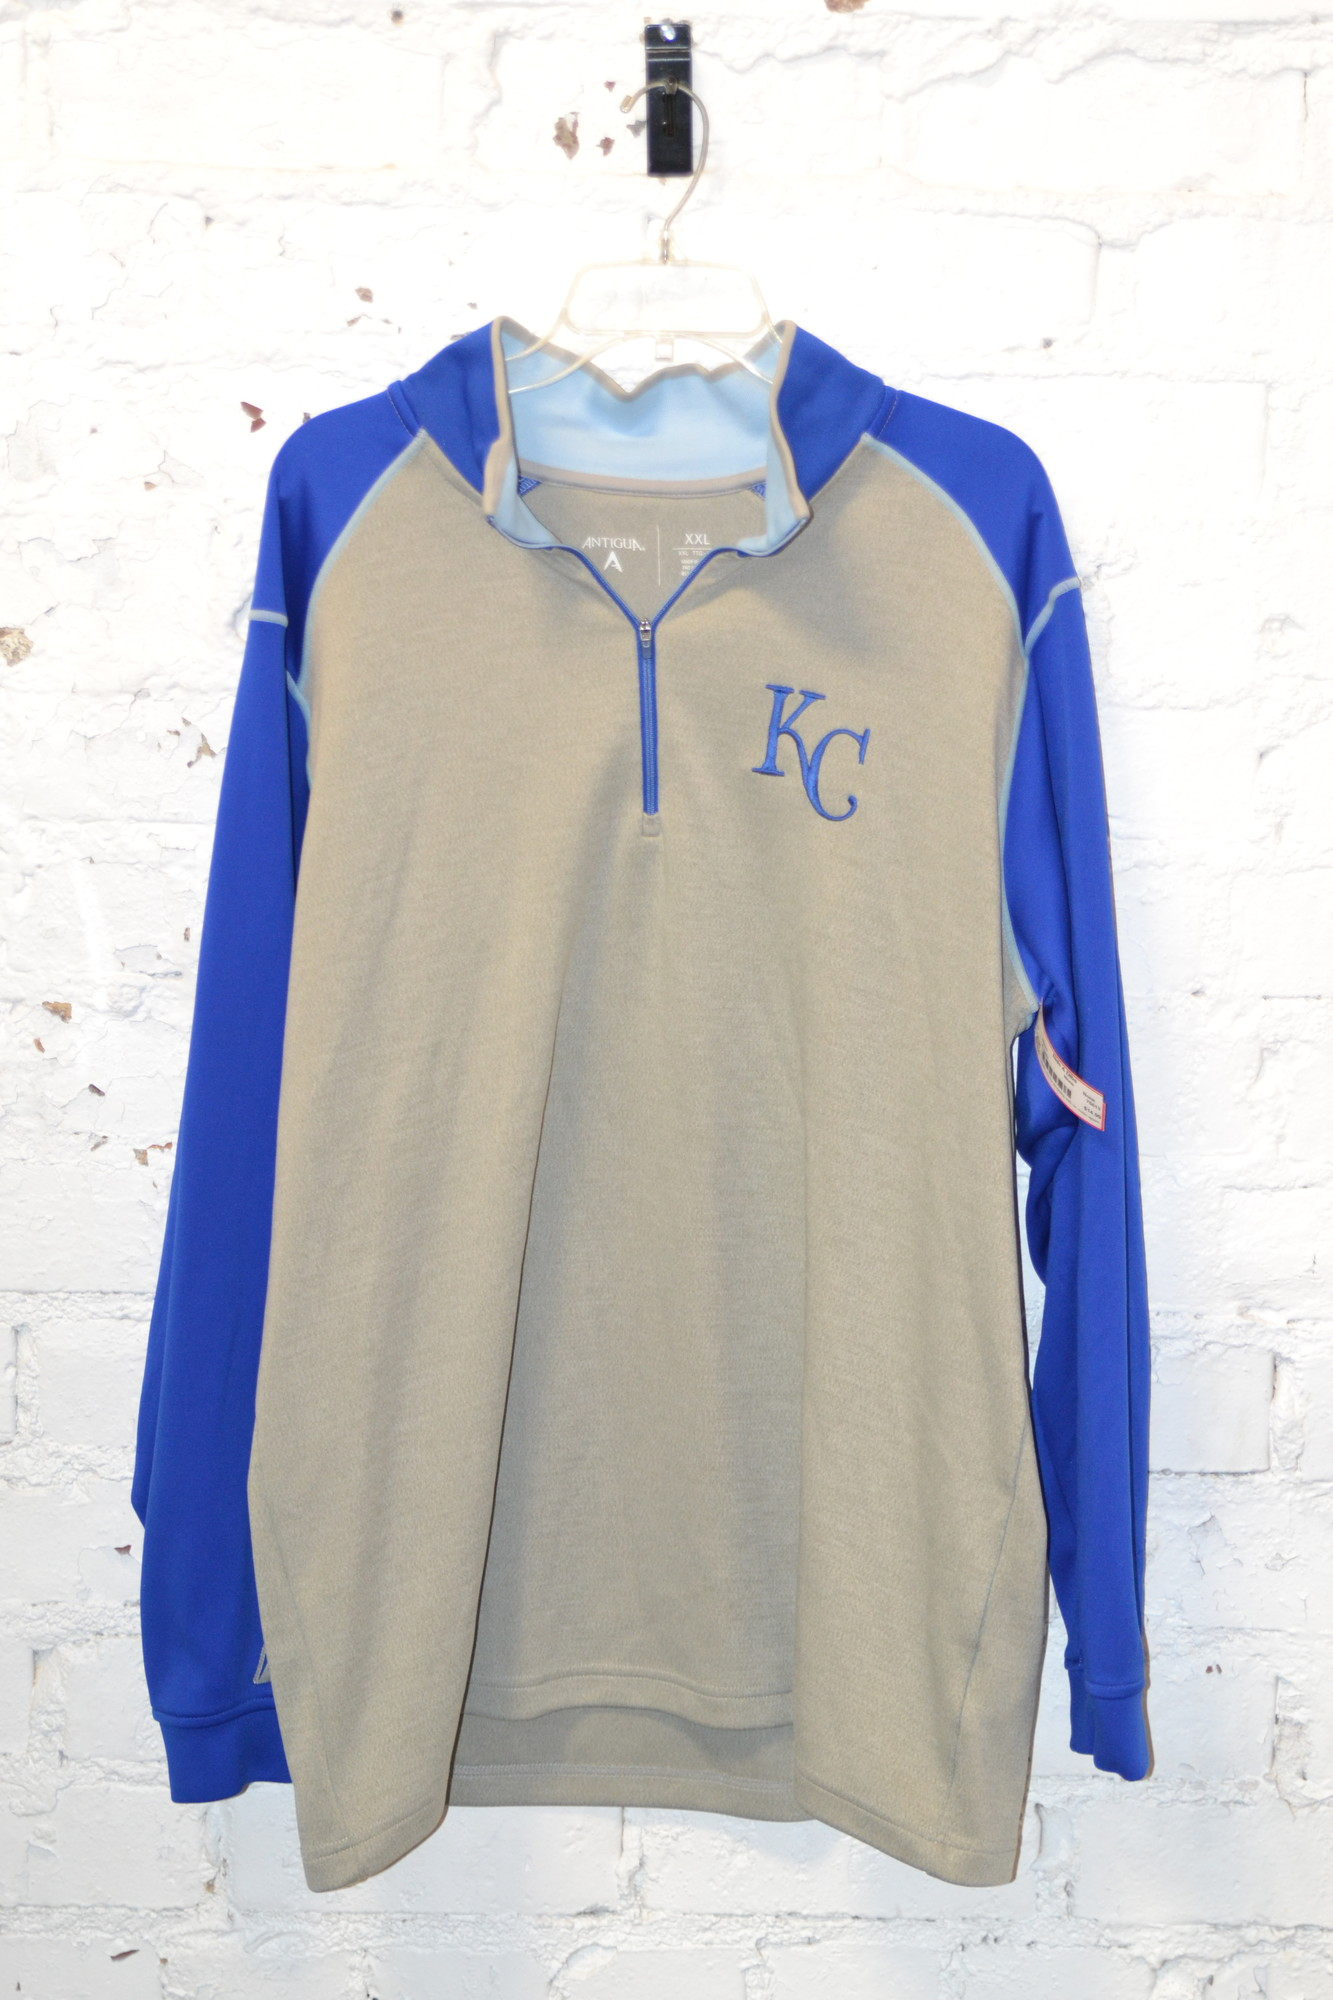 -Royals<br /> -Quarter zip<br /> -Gray with blue sleeves<br /> -Excellent condition<br /> -Size XXL